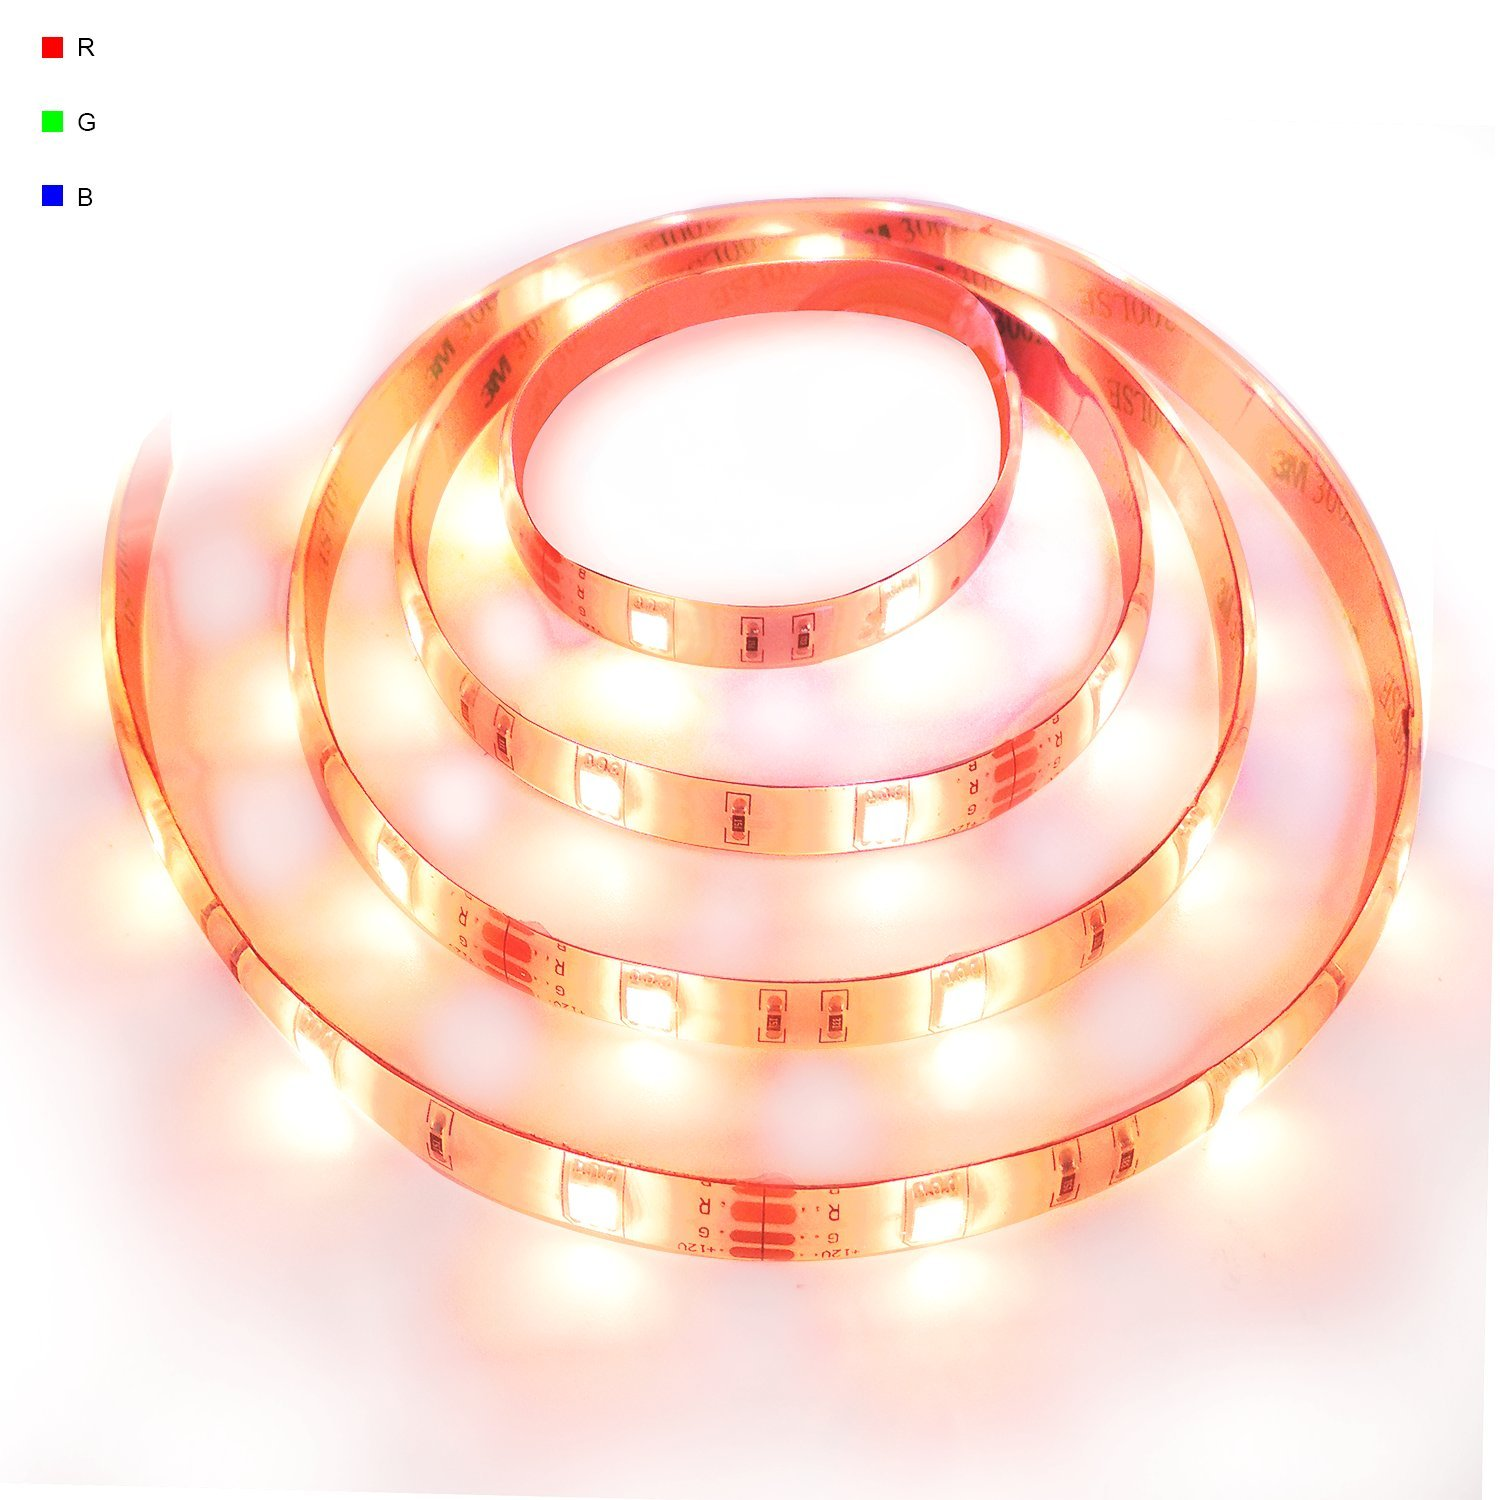 LED Flexible Strip Lights RGB 150LEDs 16.4Ft(5M) DC12V SMD5050 4Pin Dimmable Multicolor Tape Lighting for DIY Christmas Garden Outdoor Closet TV Backlight Mirror Decoration (Waterproof)